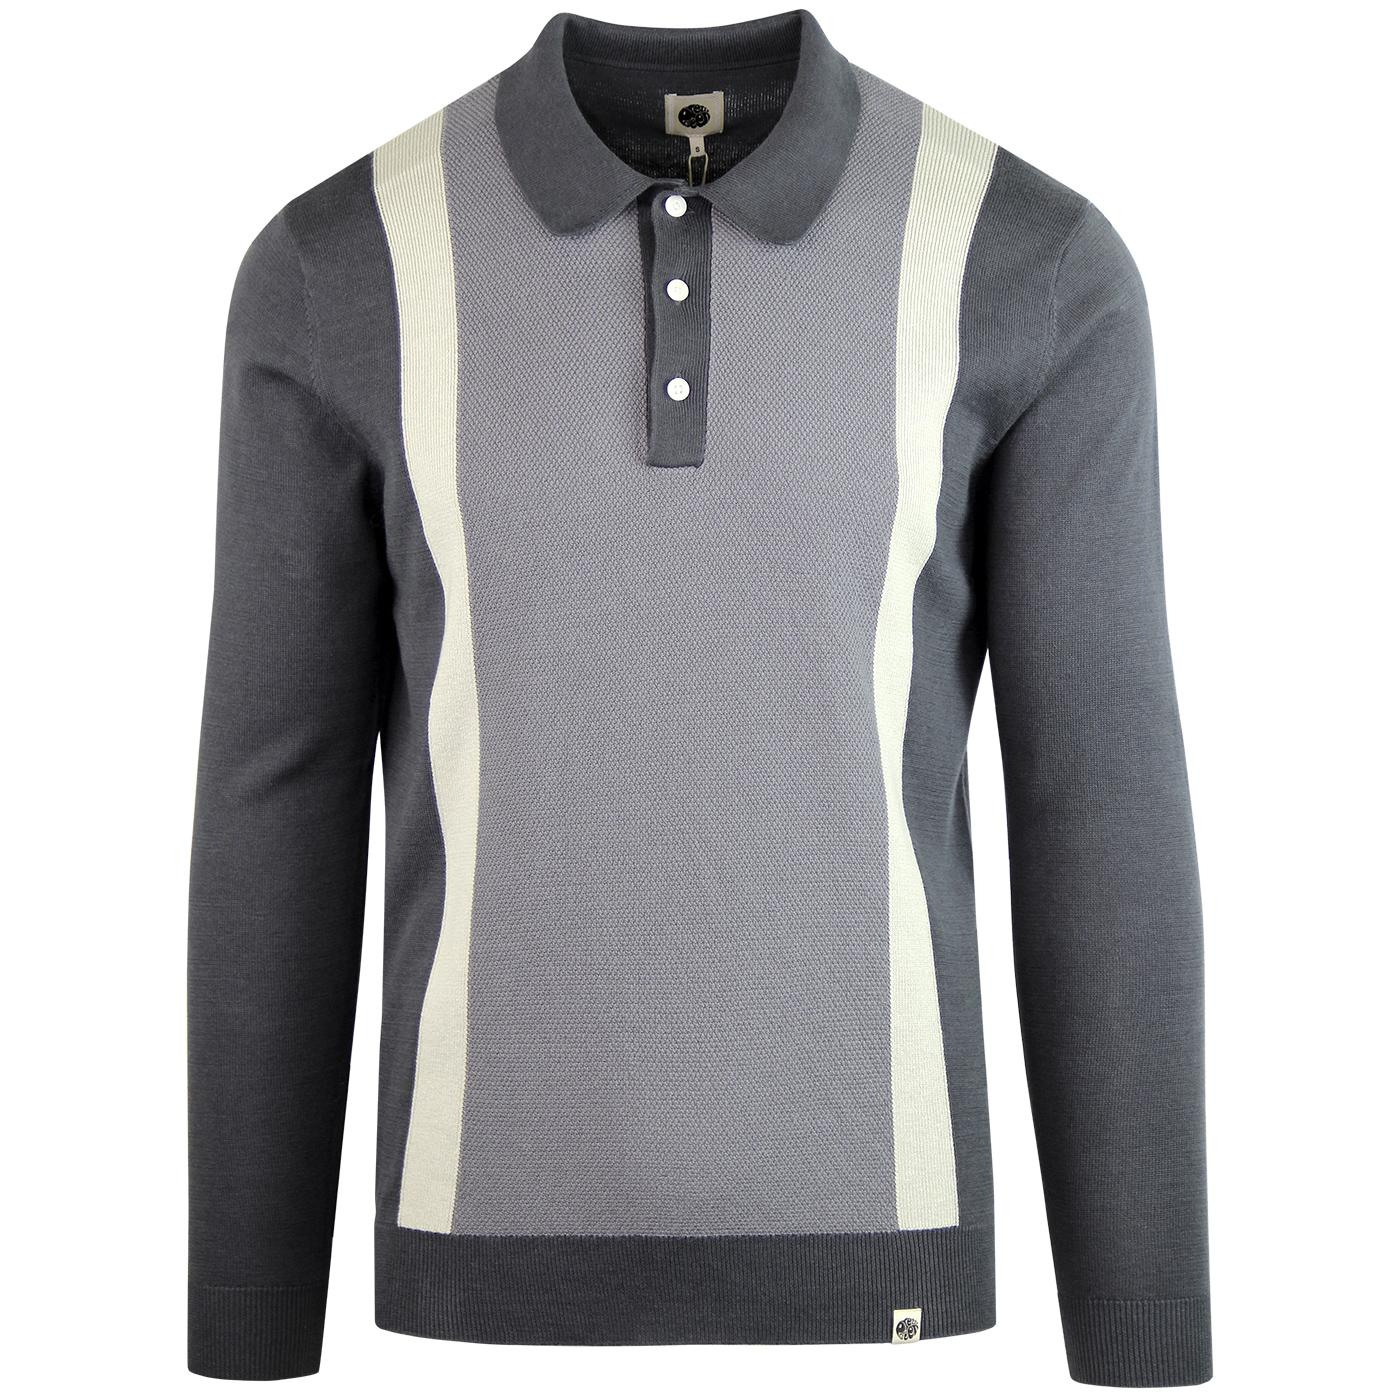 PRETTY GREEN 60s Mod Contrast Stripe Polo Top GREY